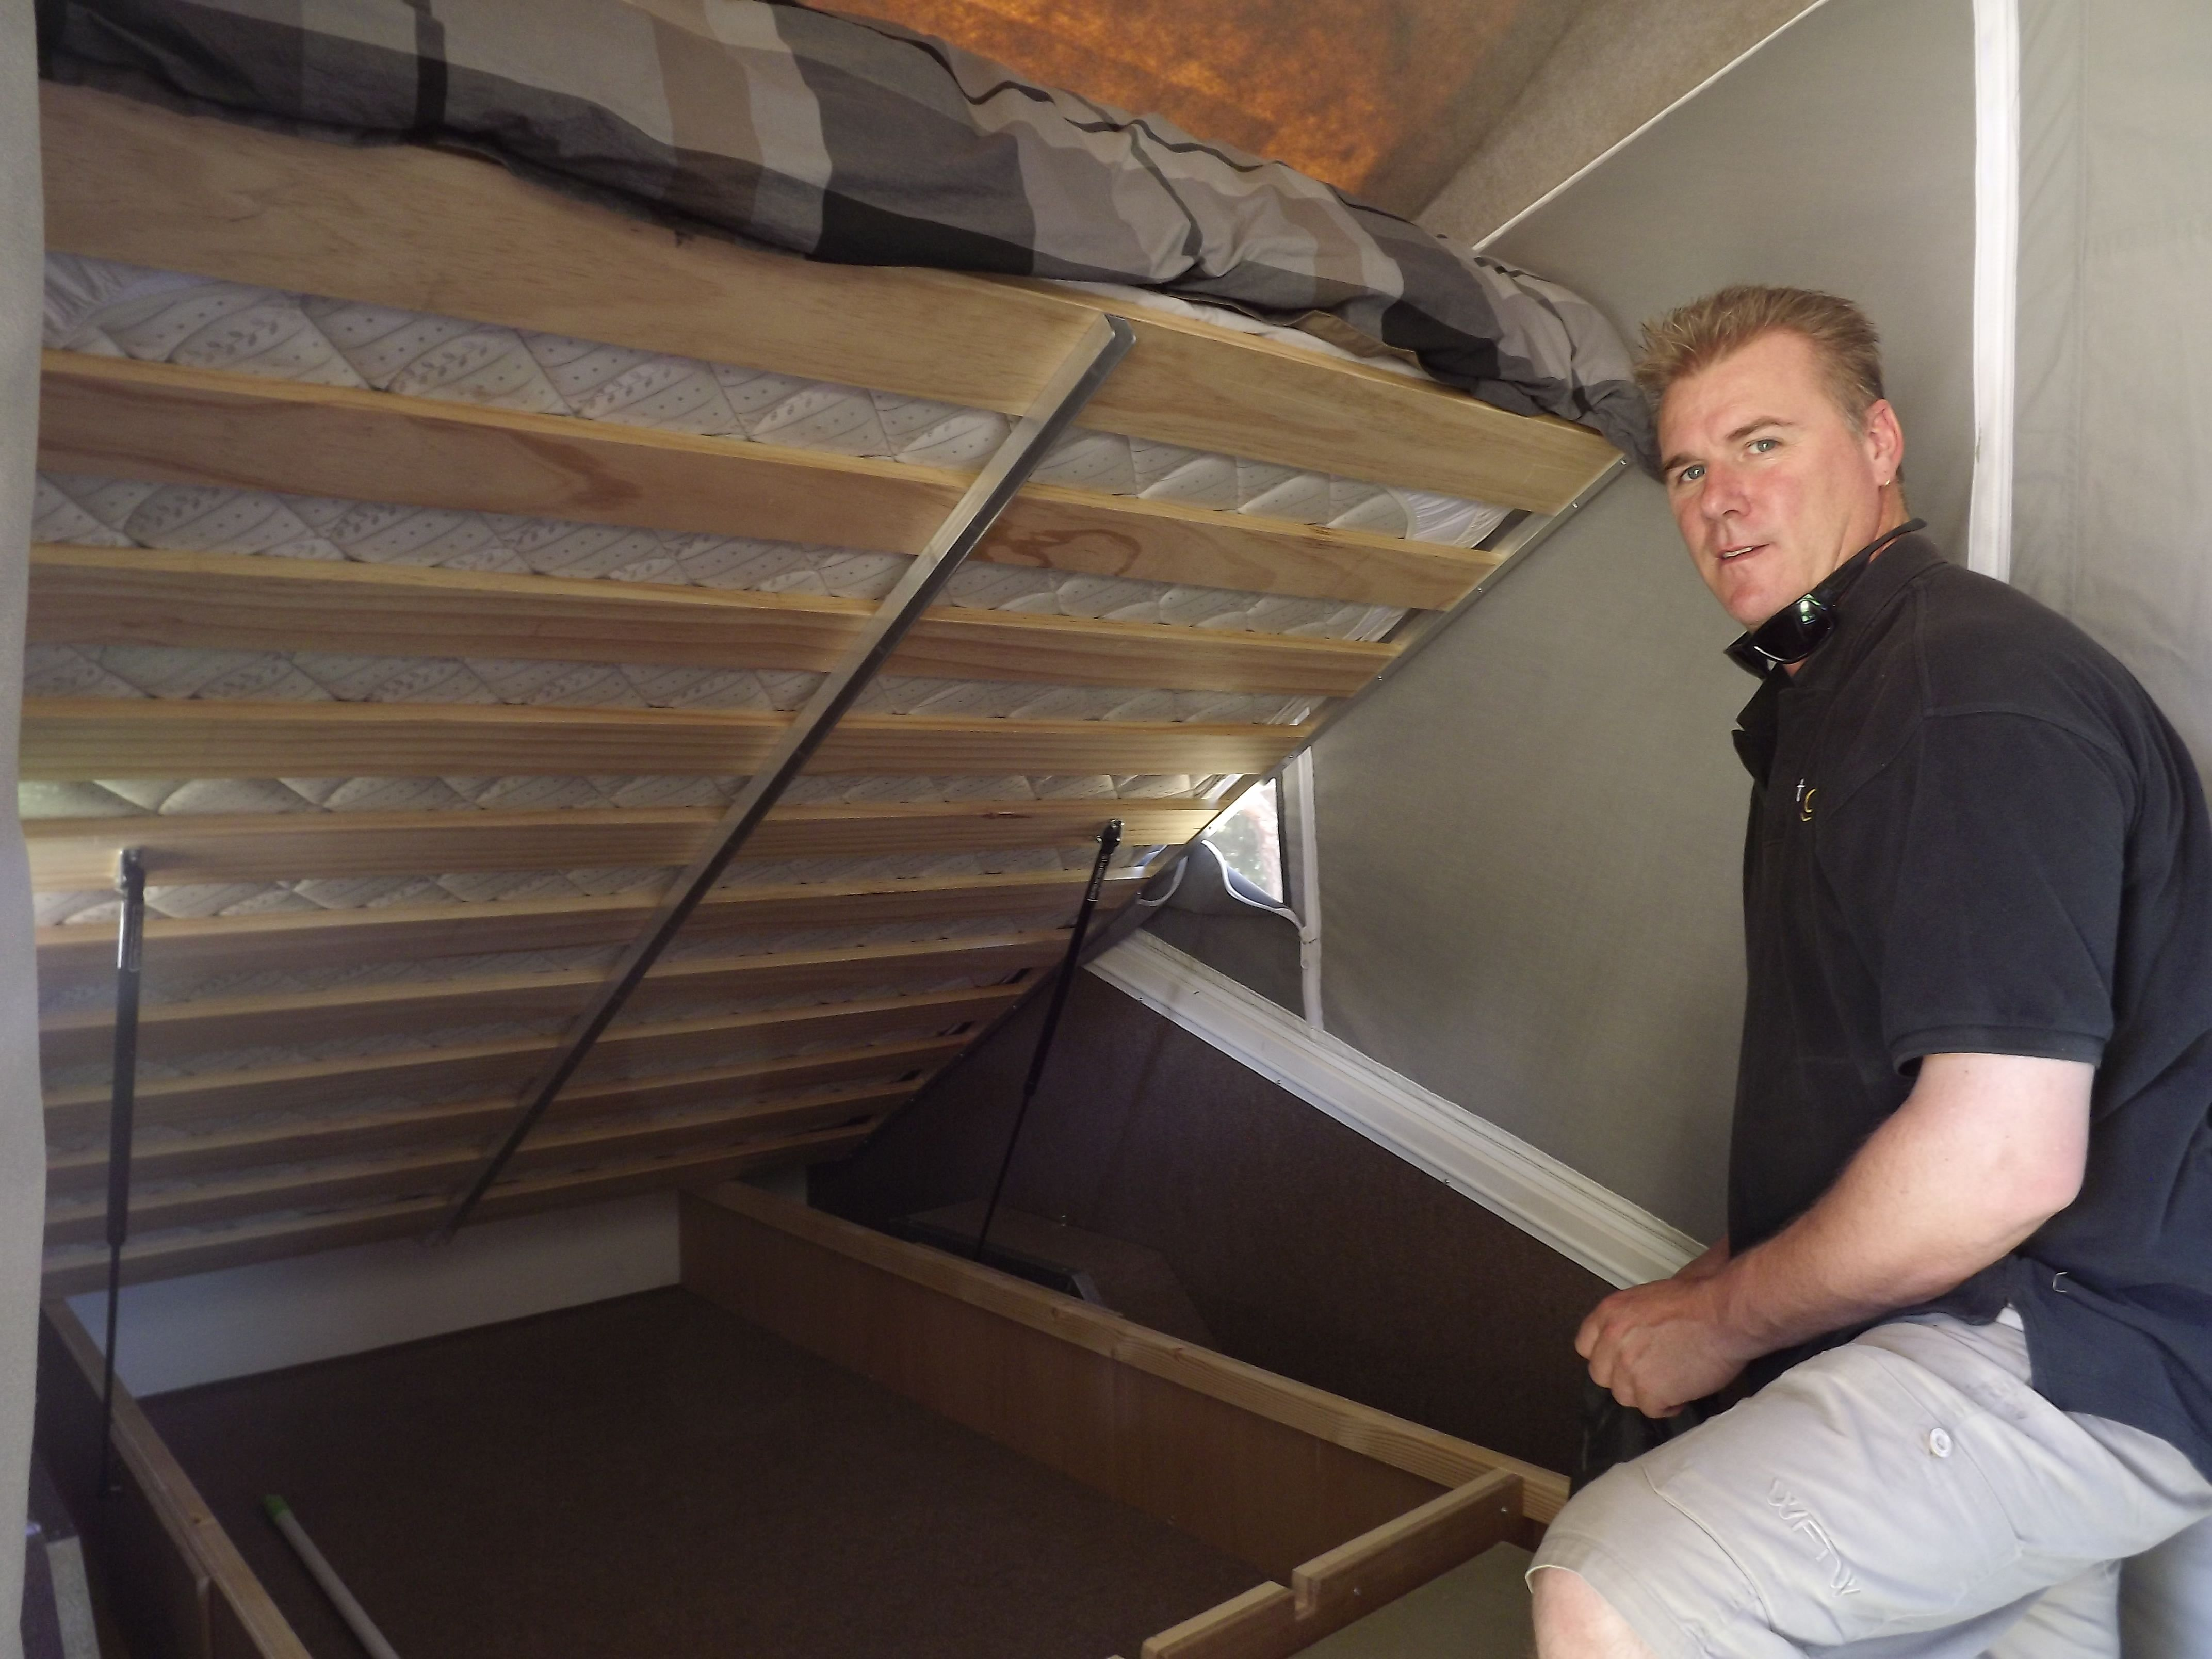 Ample storage under the bed .easily accessed with a quick lift assisted by gas struts.  sc 1 st  Pinterest & Ample storage under the bed ...easily accessed with a quick lift ...